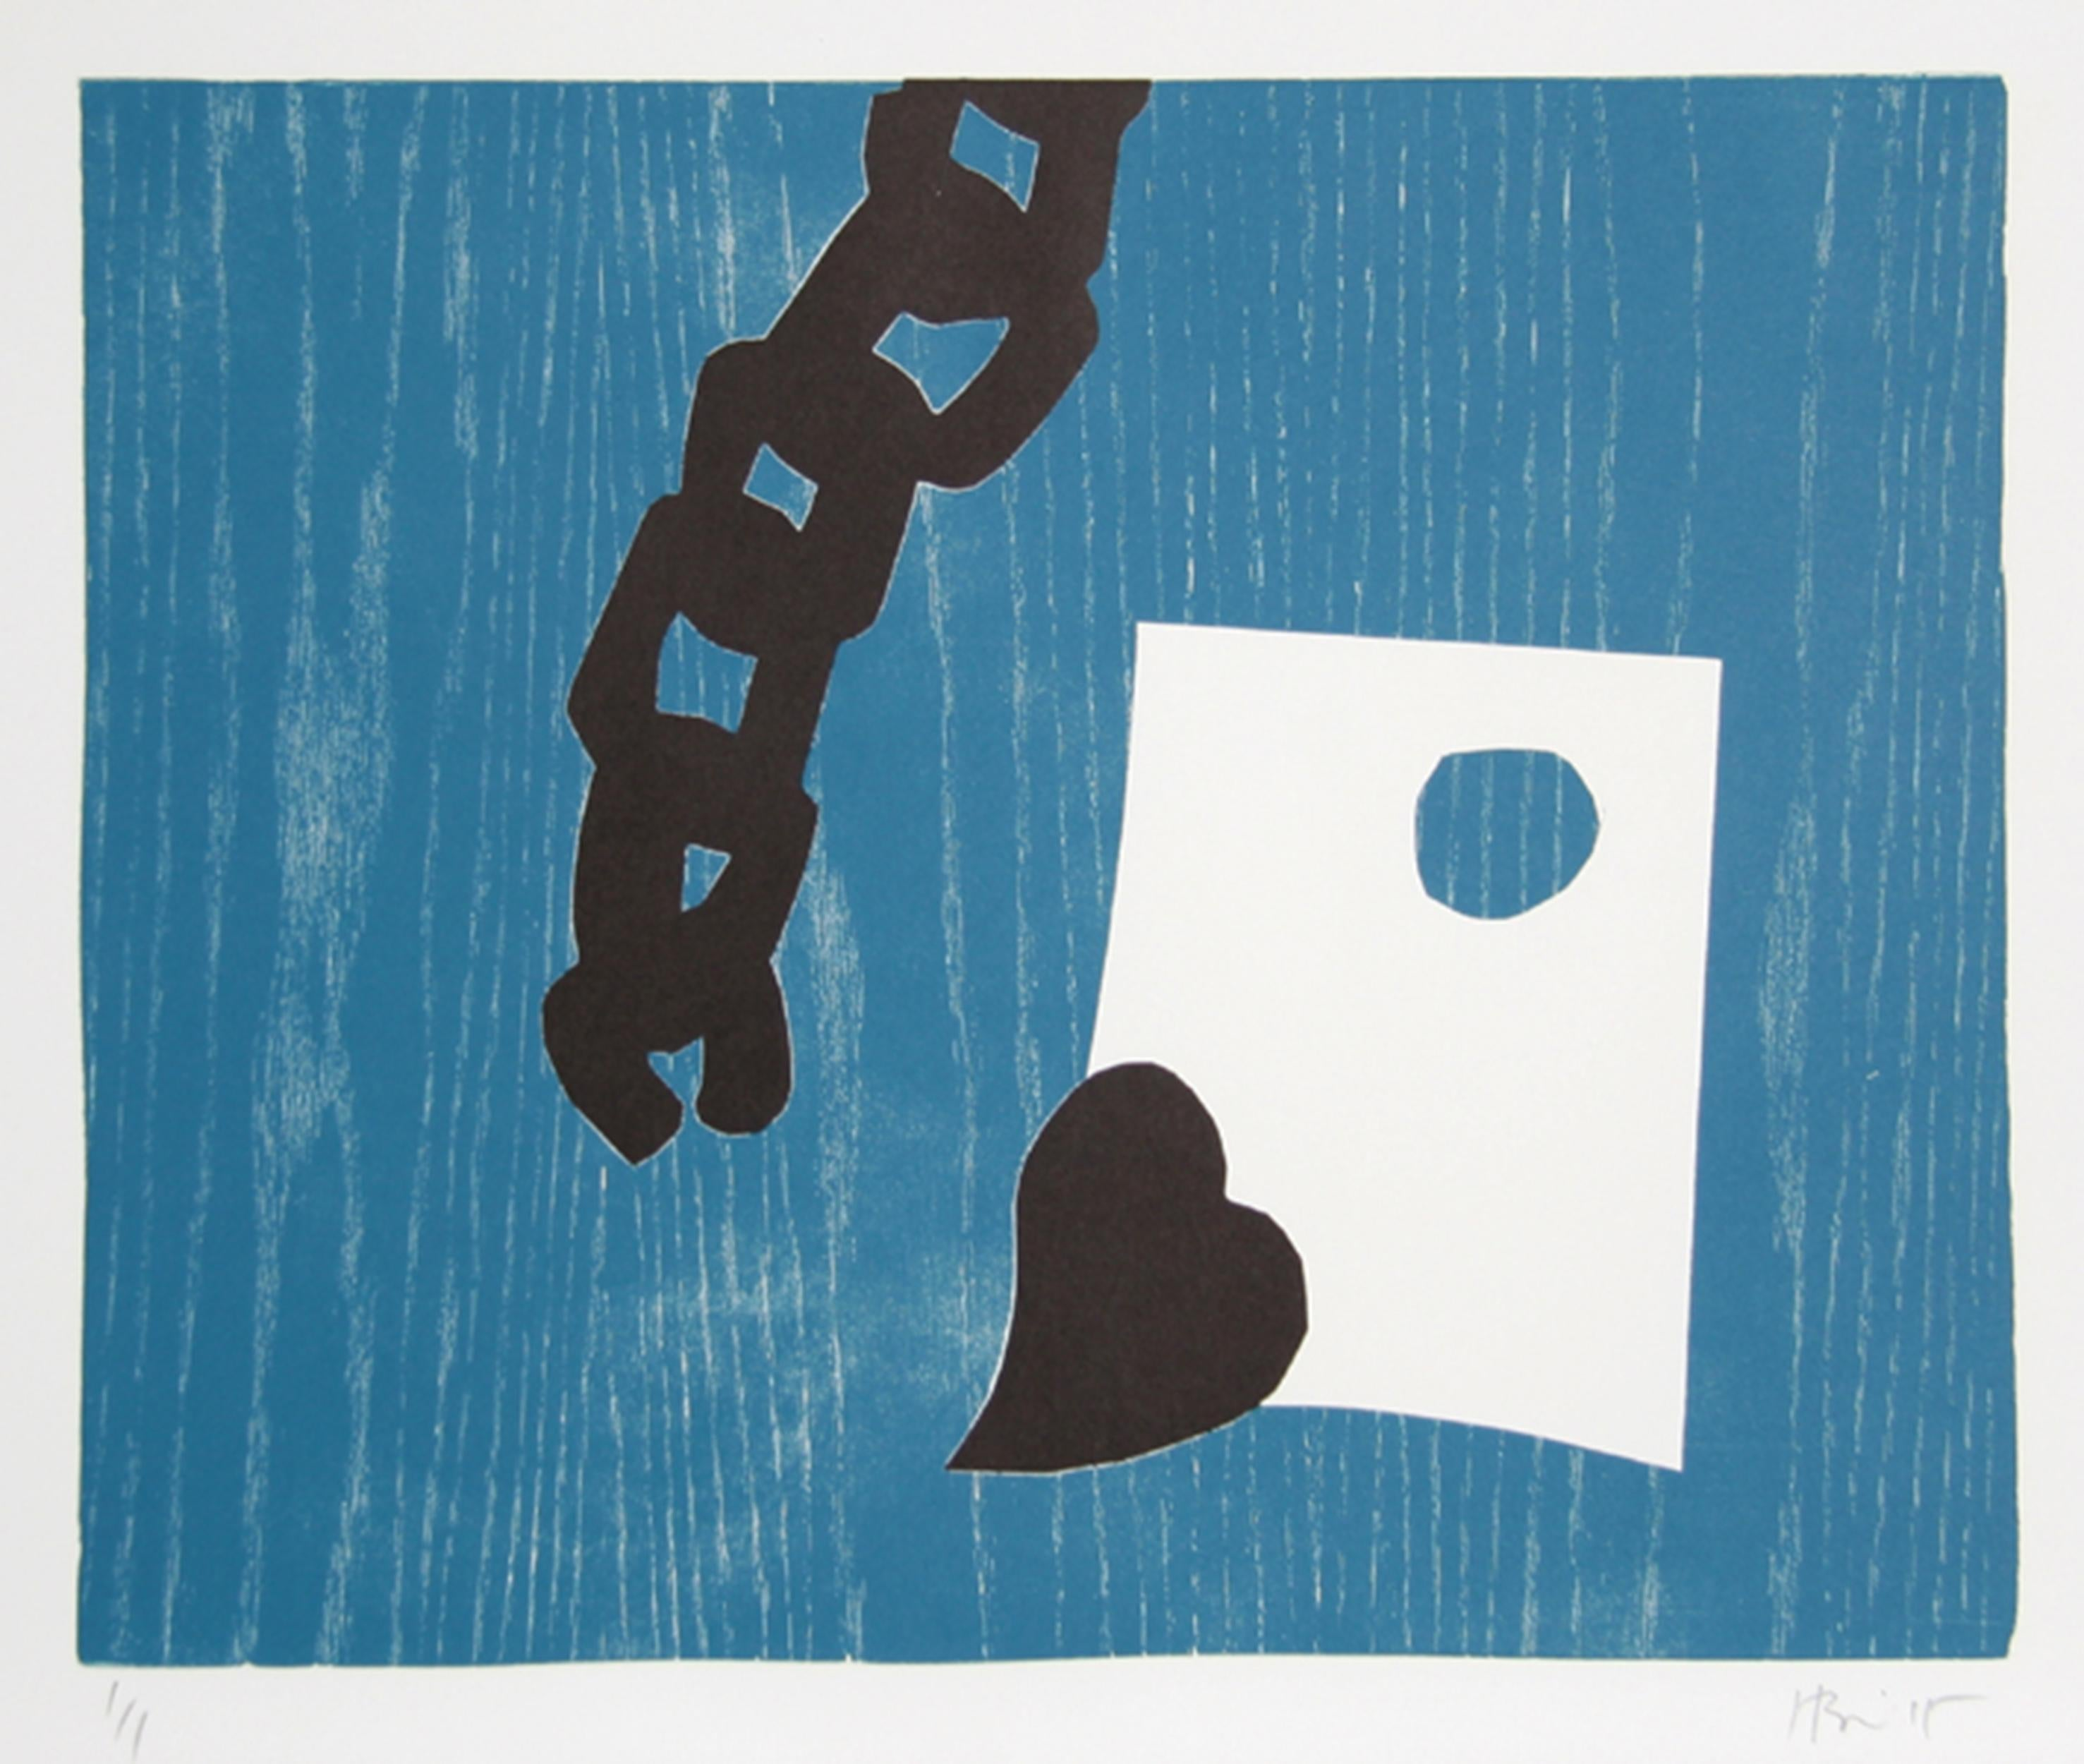 Abstract Monoprint Woodcut by Charlie Hewitt